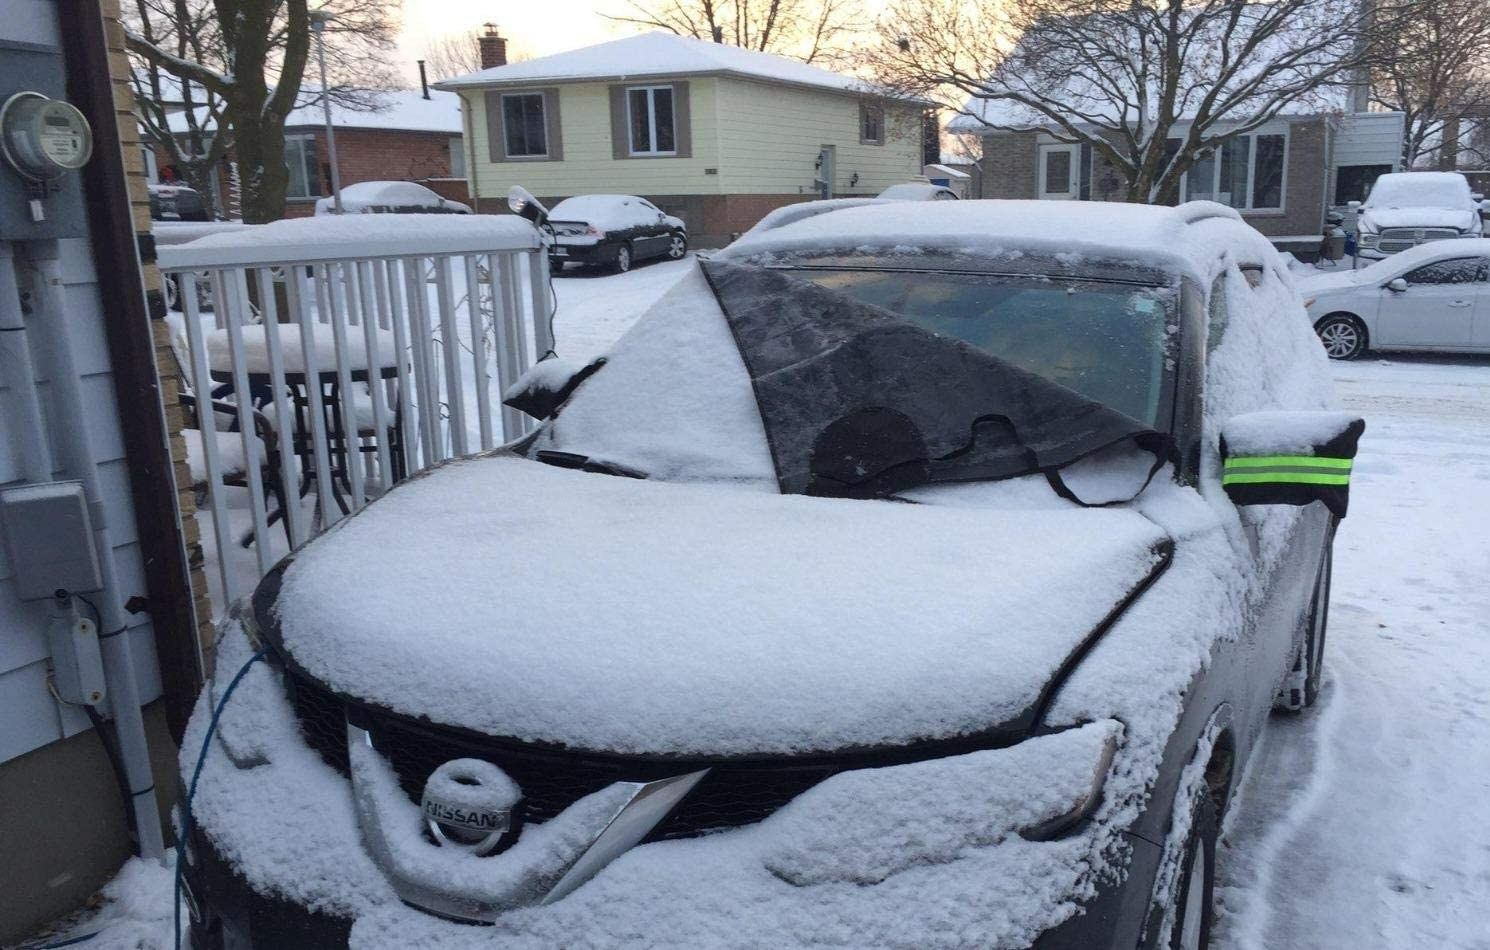 the cover on a car, half off to show that there is no snow underneath